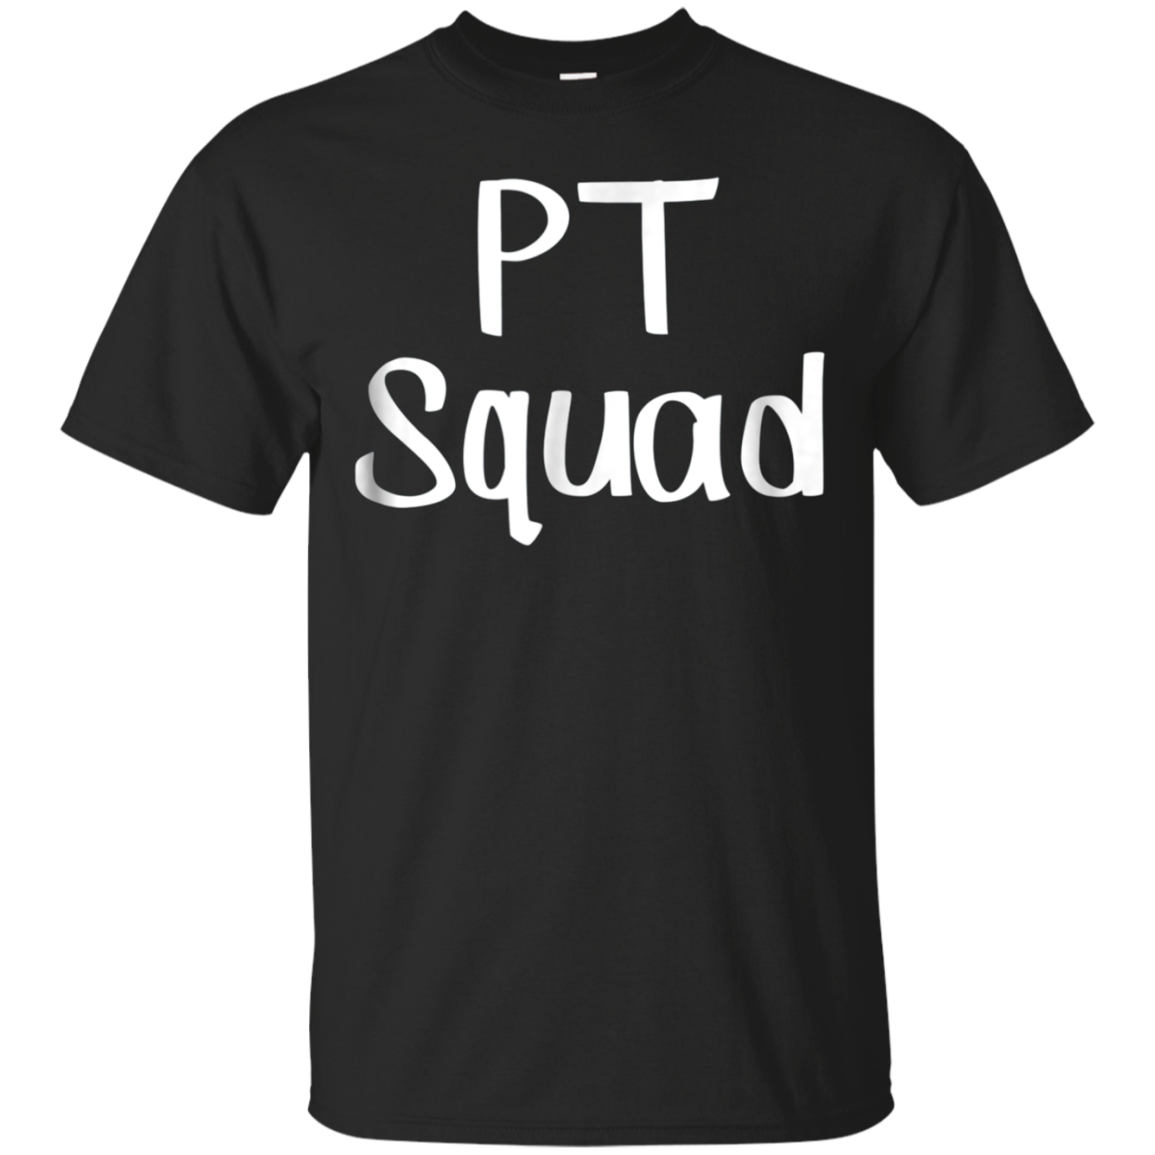 PT Squad Shirt for Physical Therapists